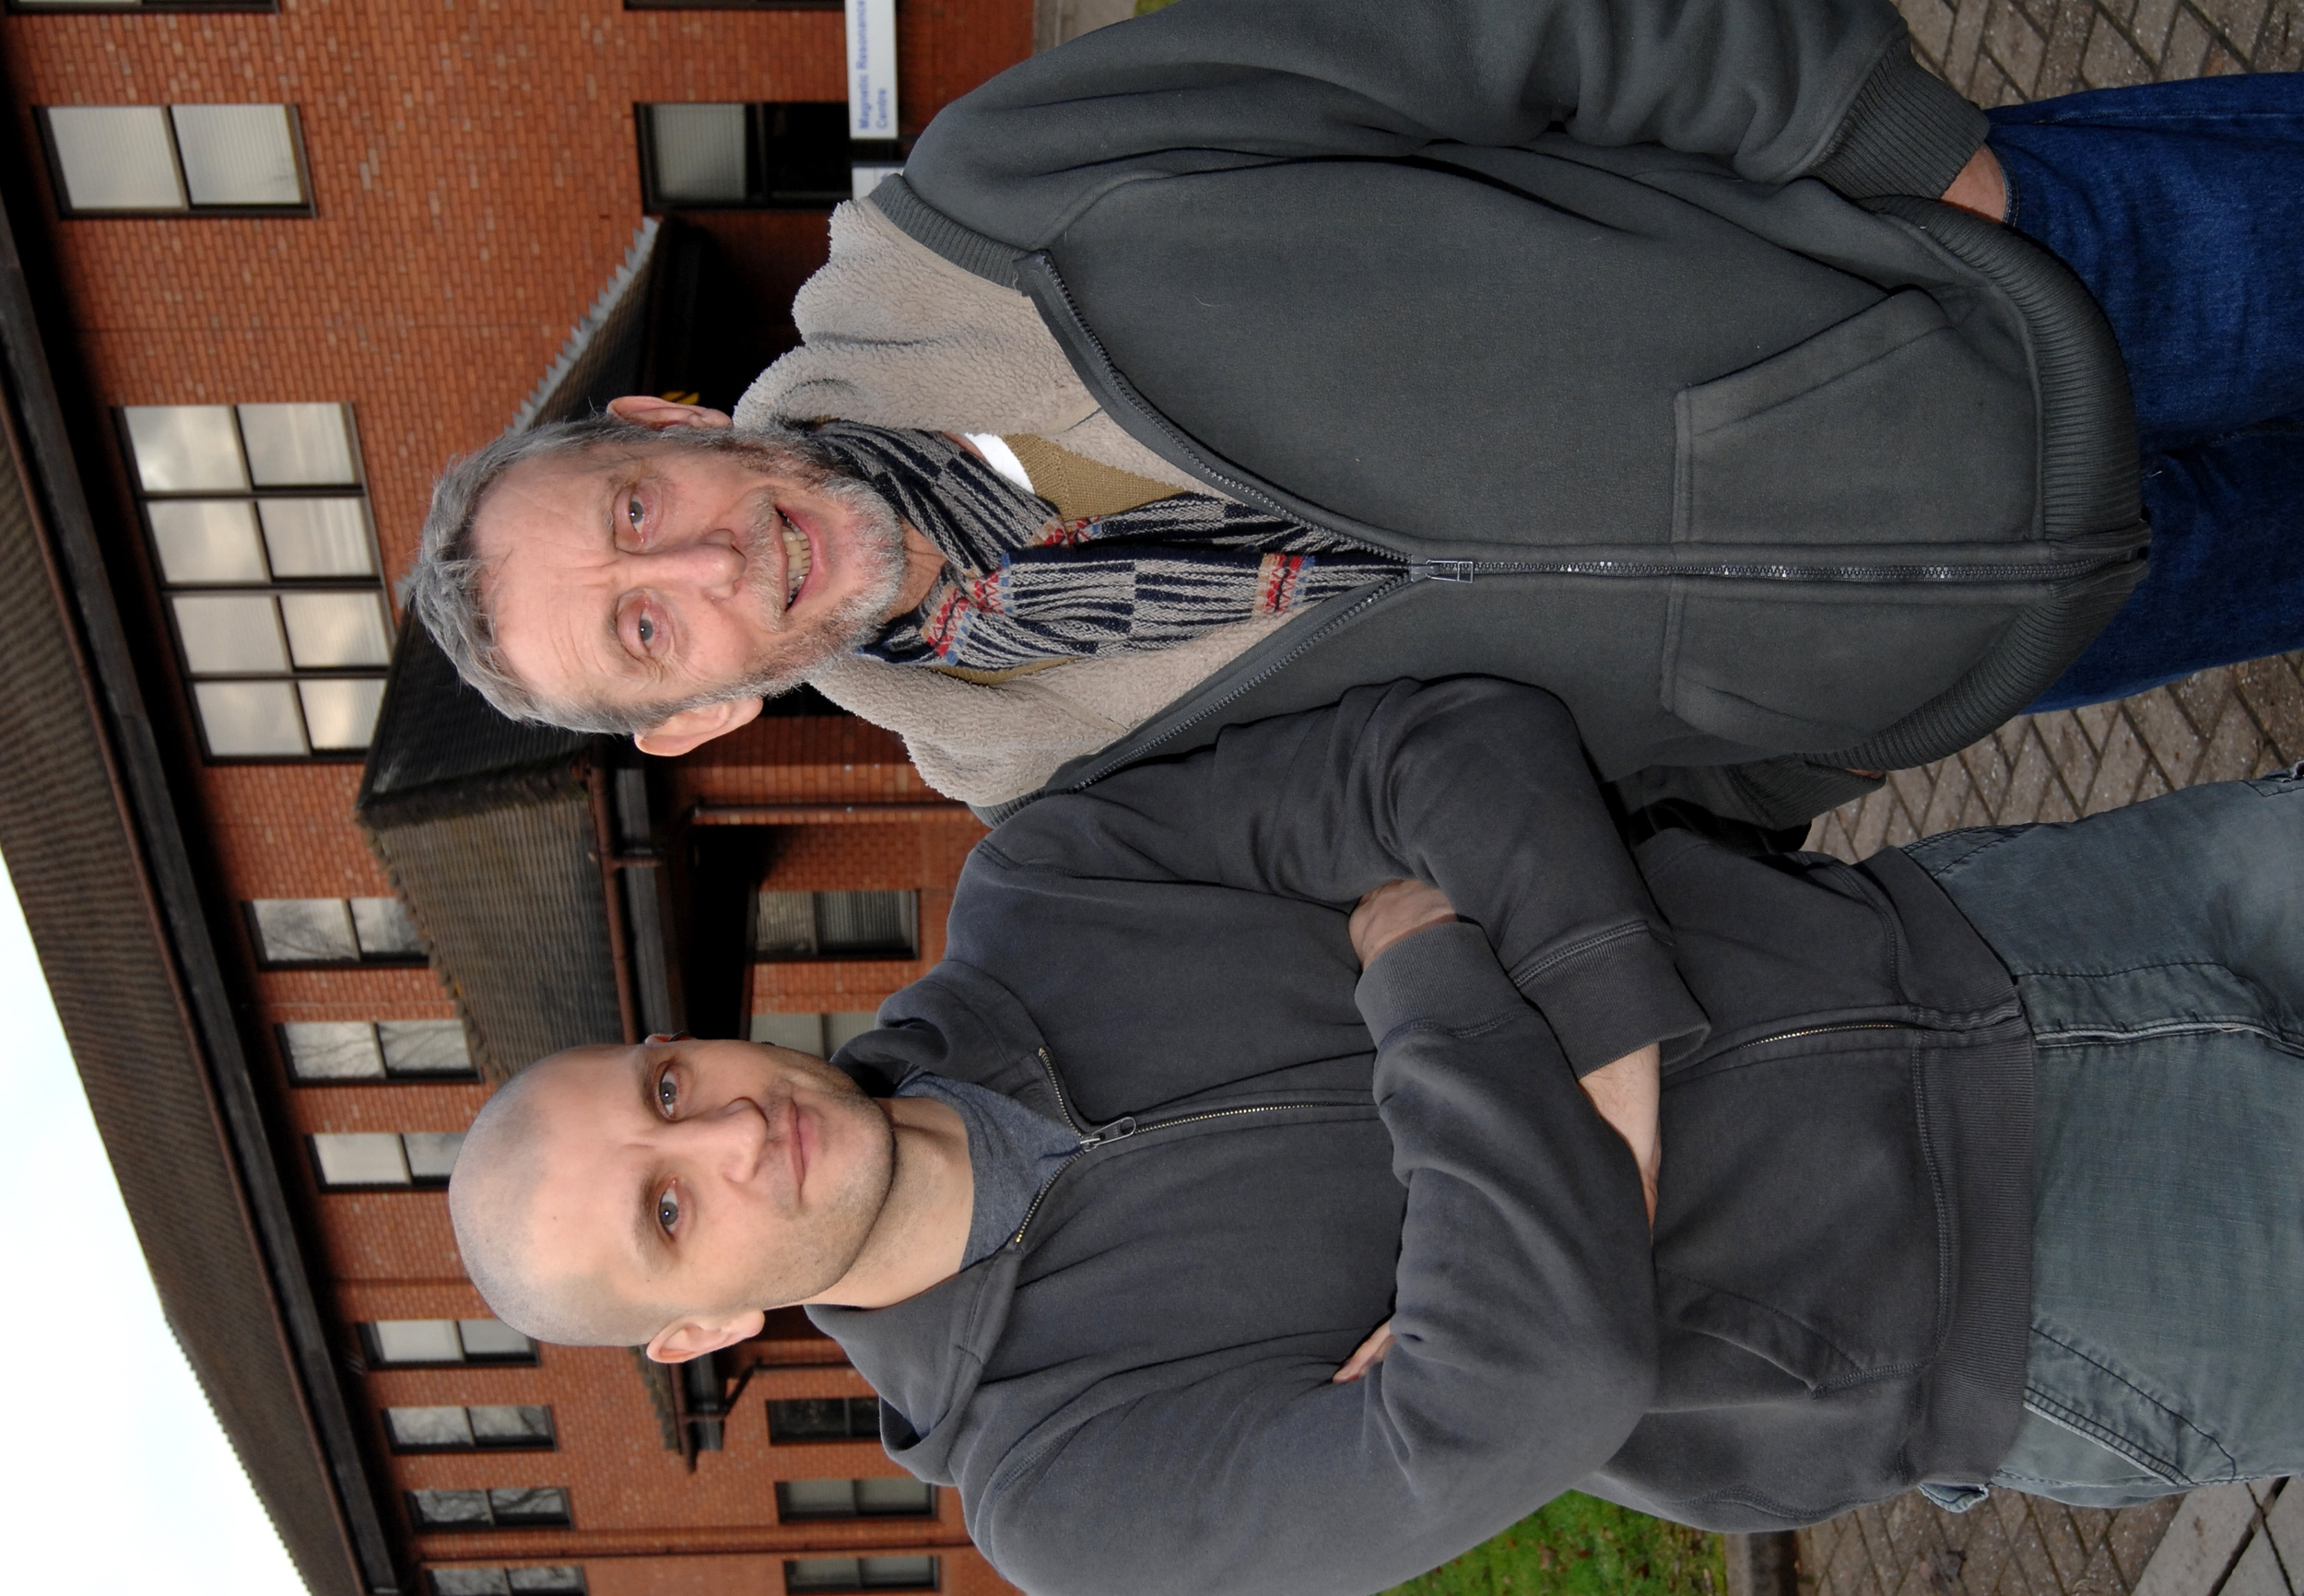 University staff - China Mieville and Michael Rosen